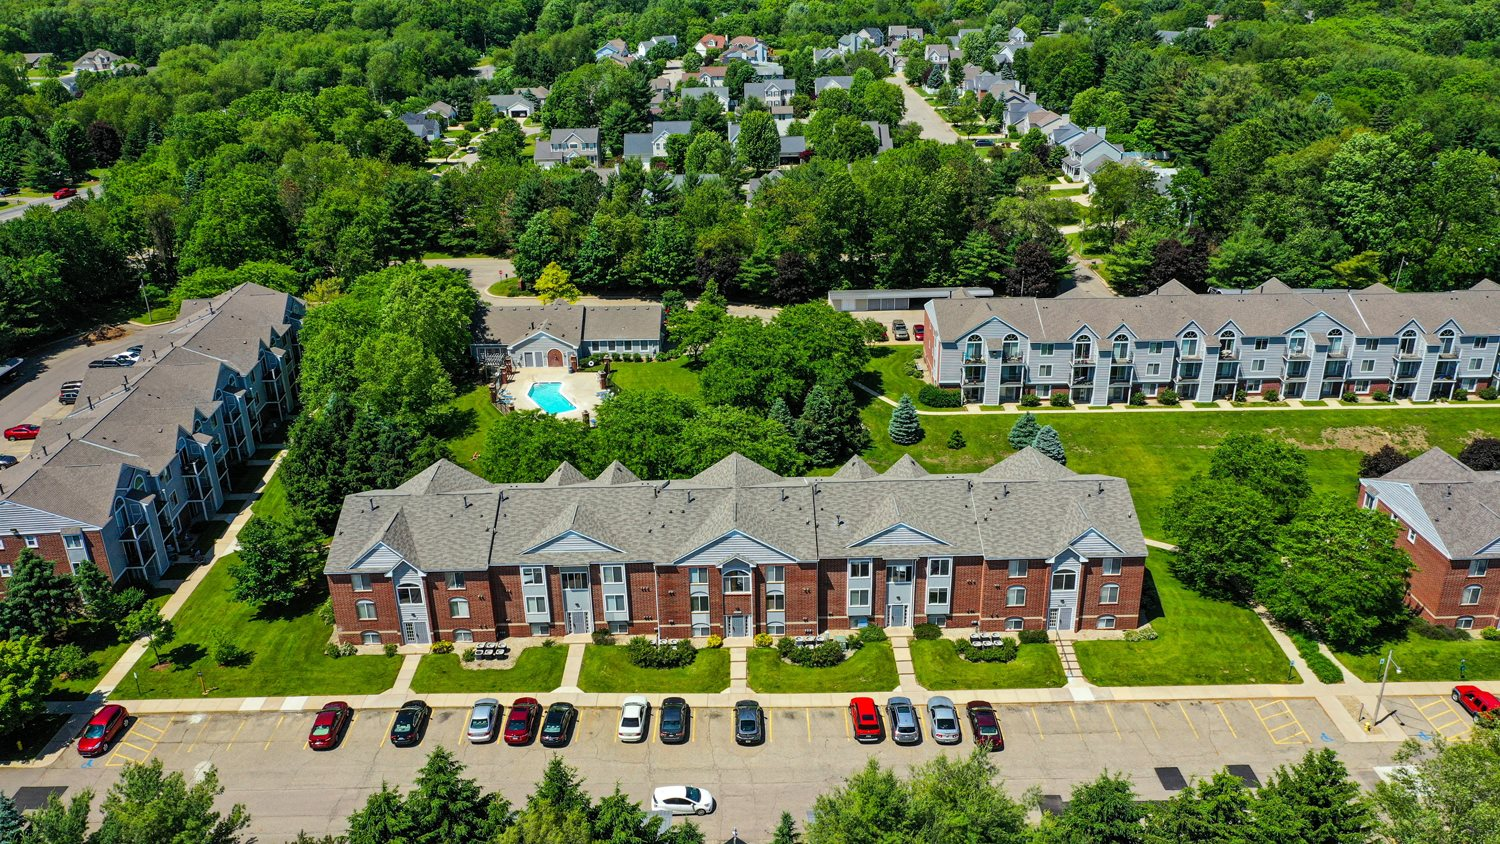 Off Street Parking Available at Foxwood and The Hermitage, Portage, Michigan